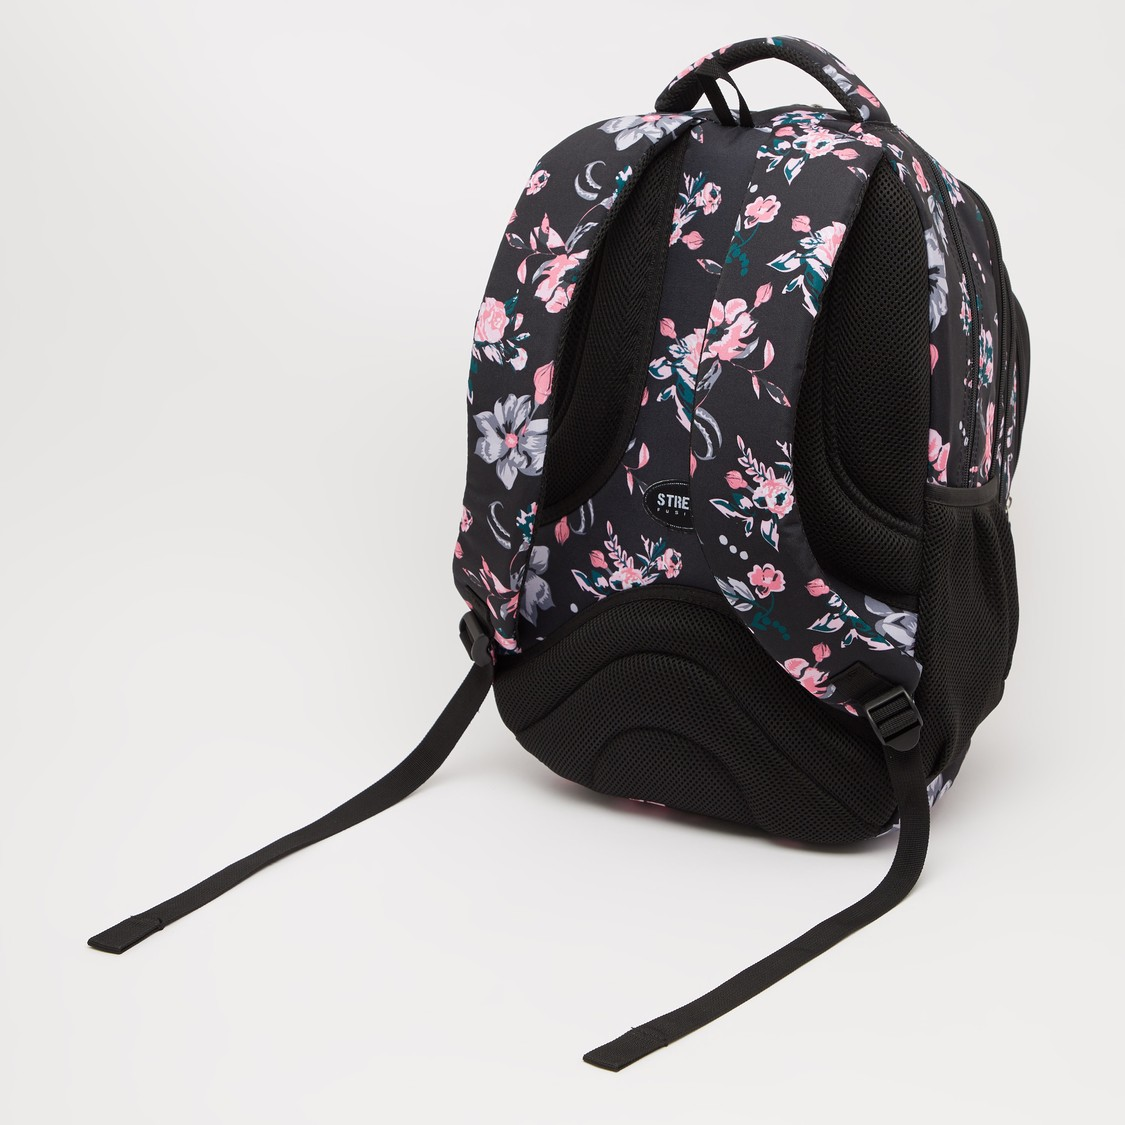 Printed Backpack with Adjustable Shoulder Straps - 19 Inches